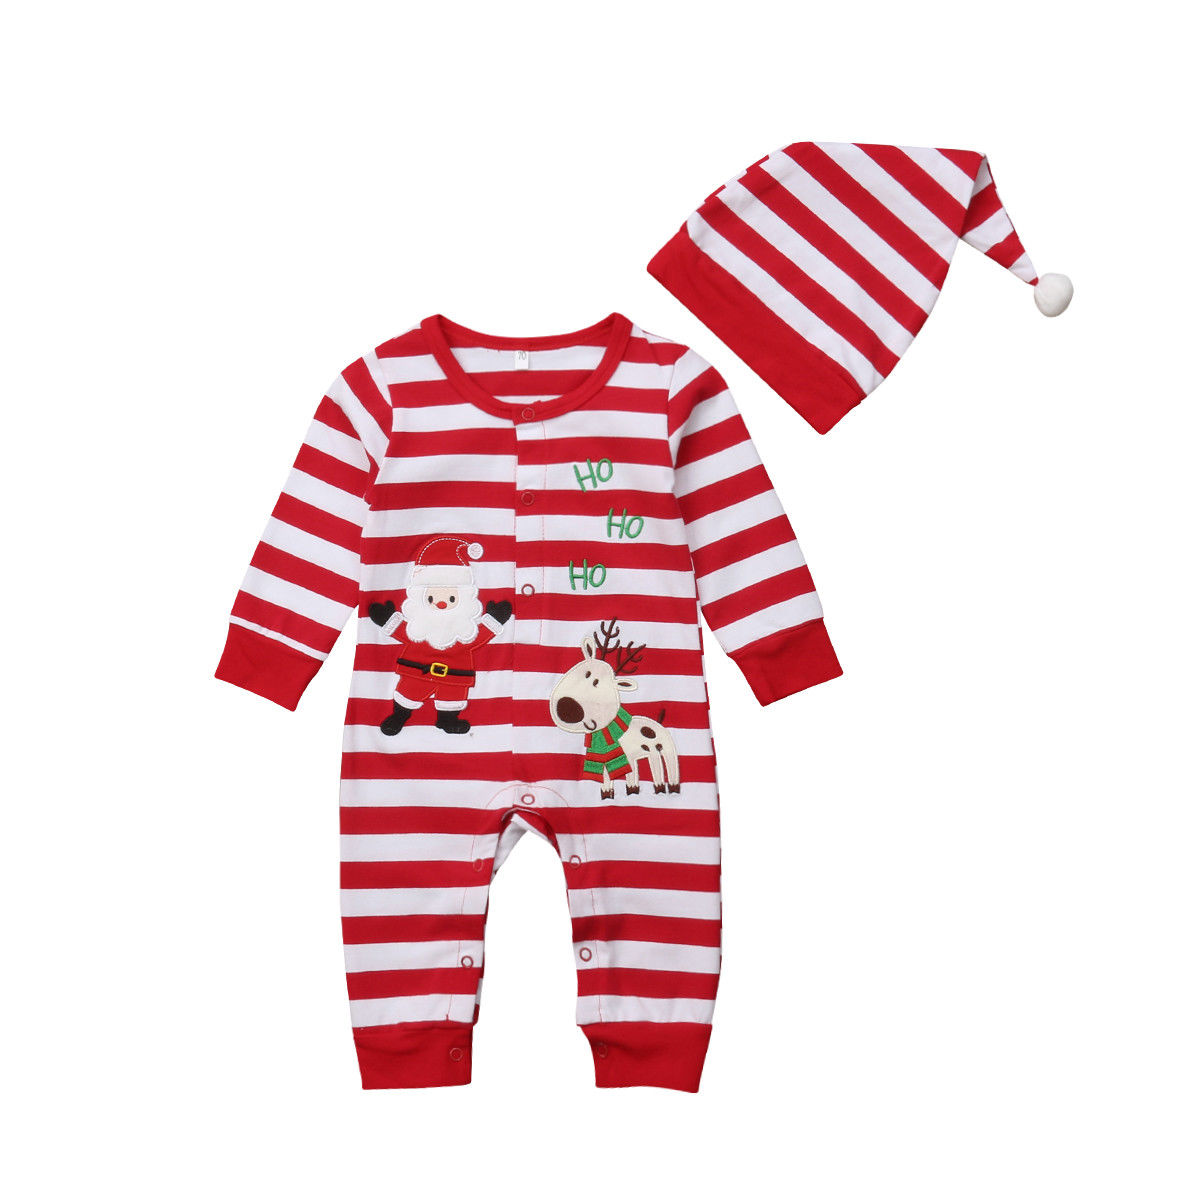 Boy Girl Cotton Romper Jumpsuit Hat Autumn Warm Party Clothes Outfit Xmas Newborn Inafnt Baby Boy Girl Clothing Stripe 0-24M summer 2017 baby kids girl boy infant summer sleeveless romper harlan jumpsuit clothes outfits 0 24m